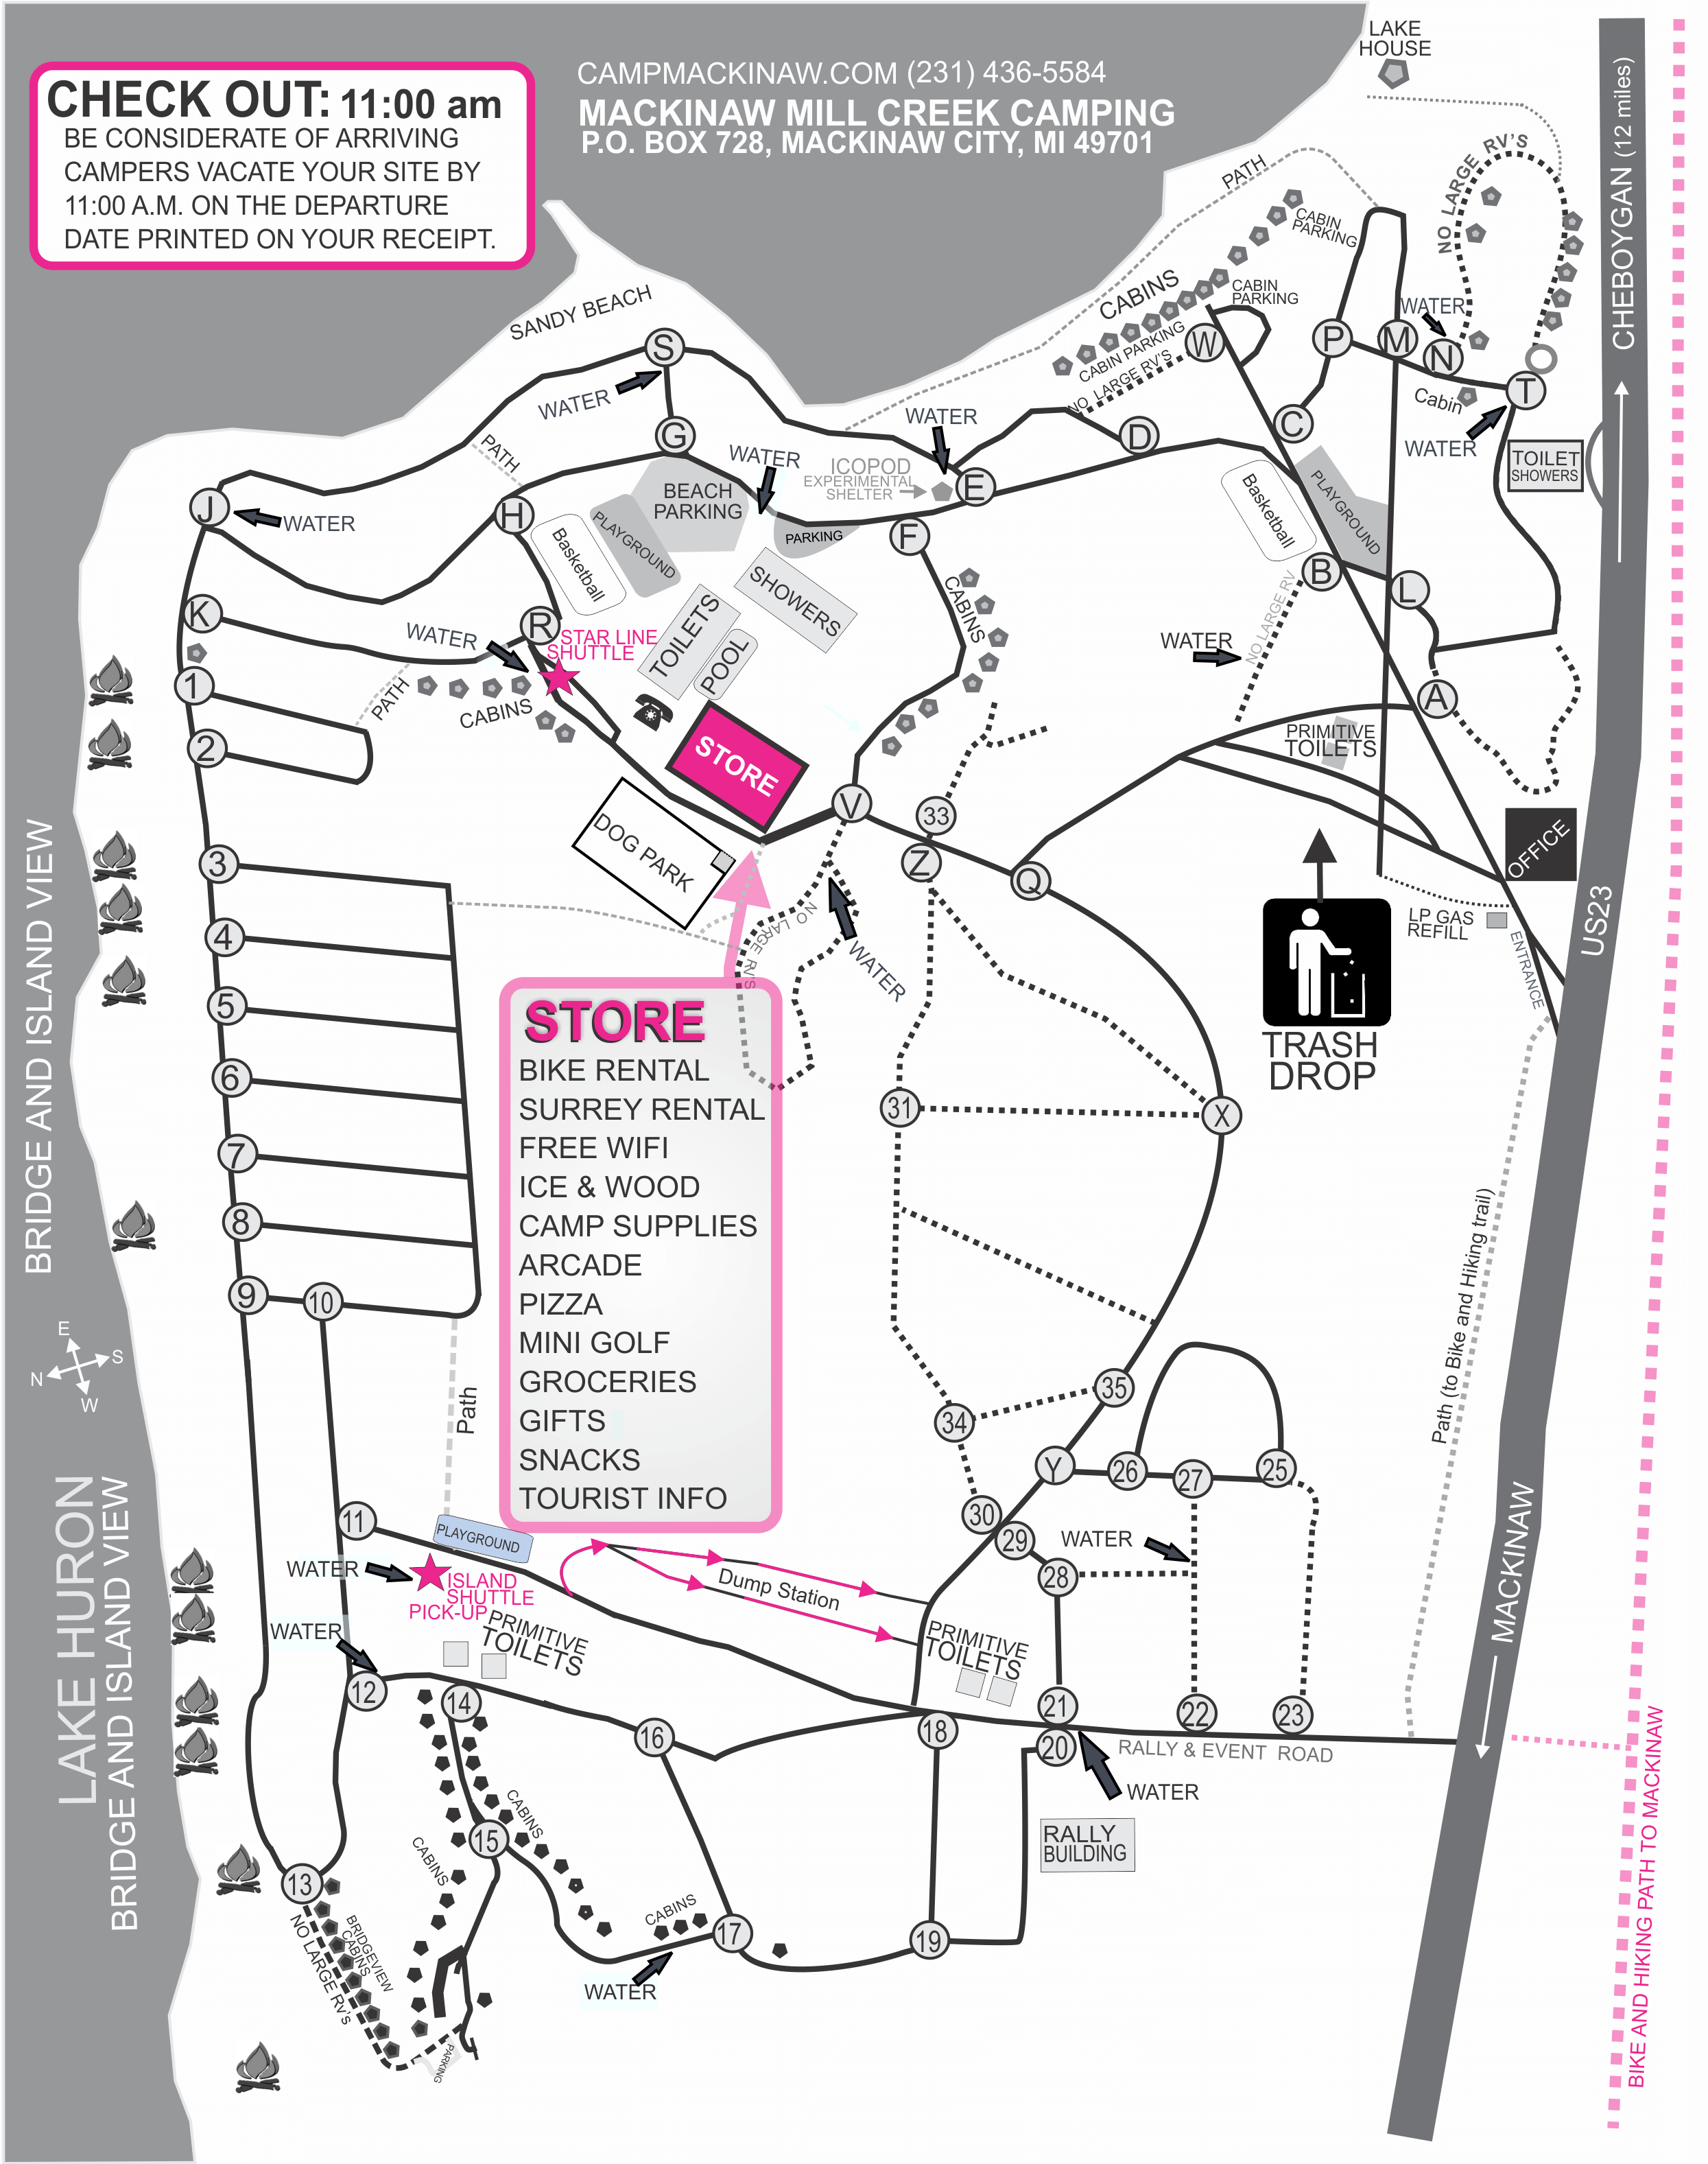 Campground map of Mackinaw Mill Creek Camping in Mackinaw City, MI. © 2017 Frank Rogala.